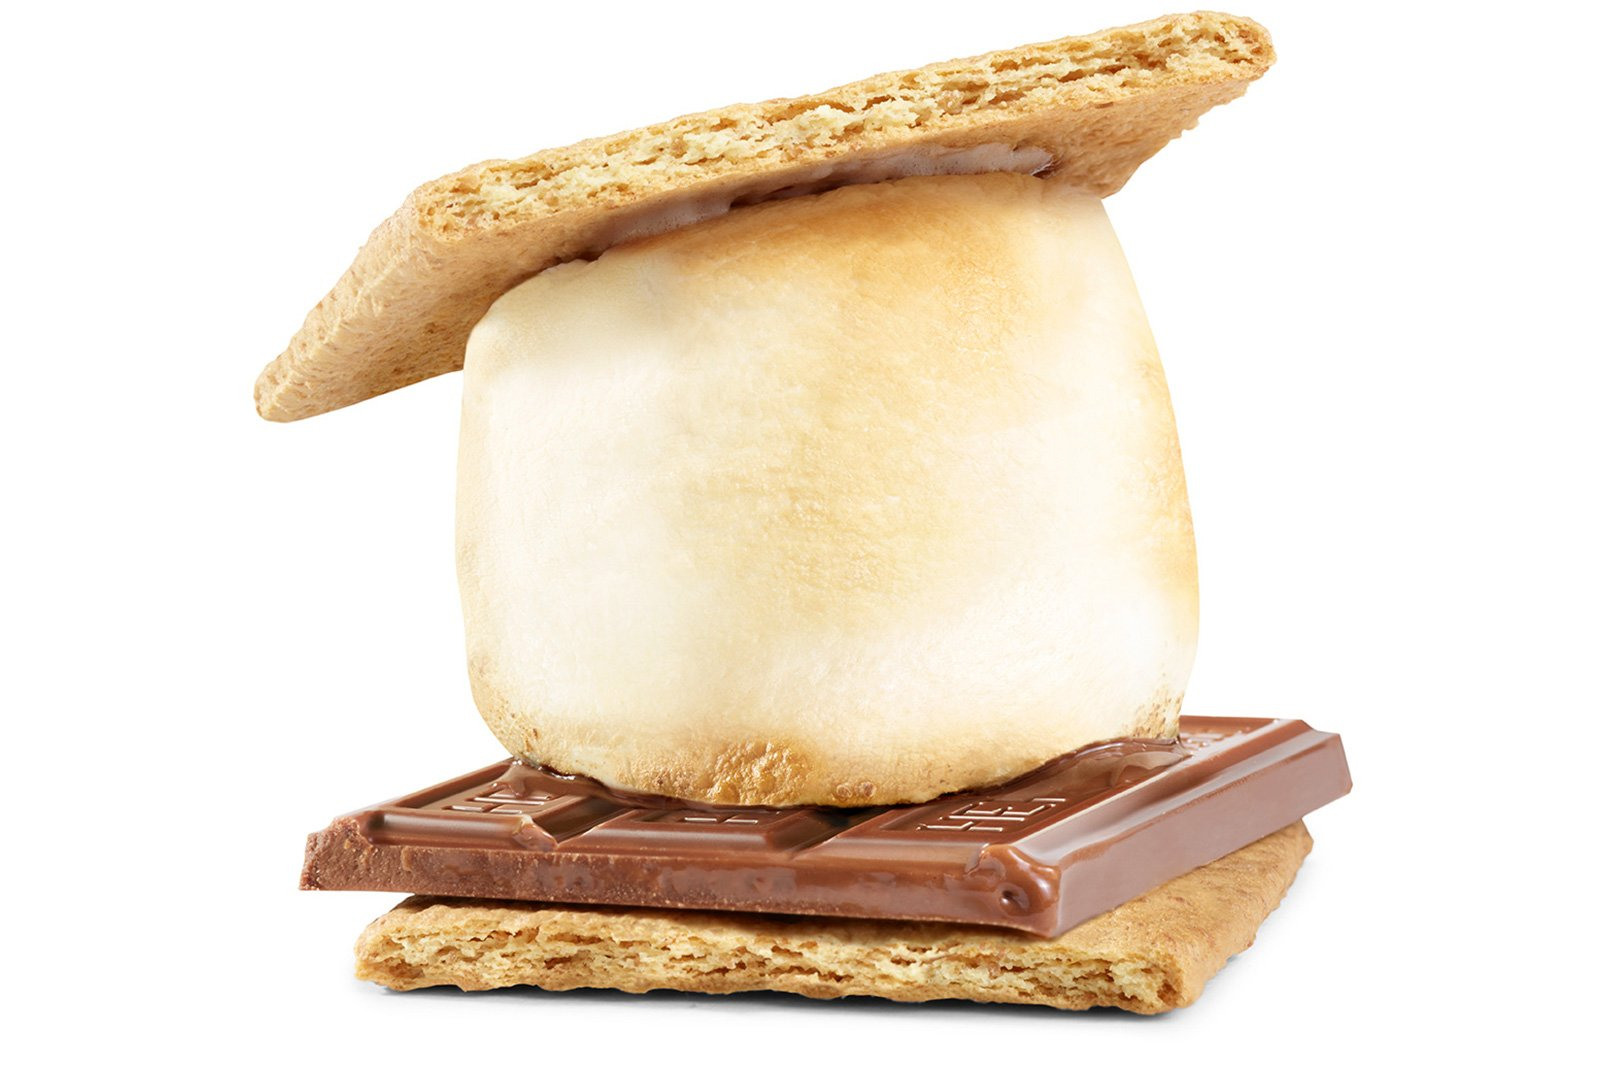 Smore after photo retouching